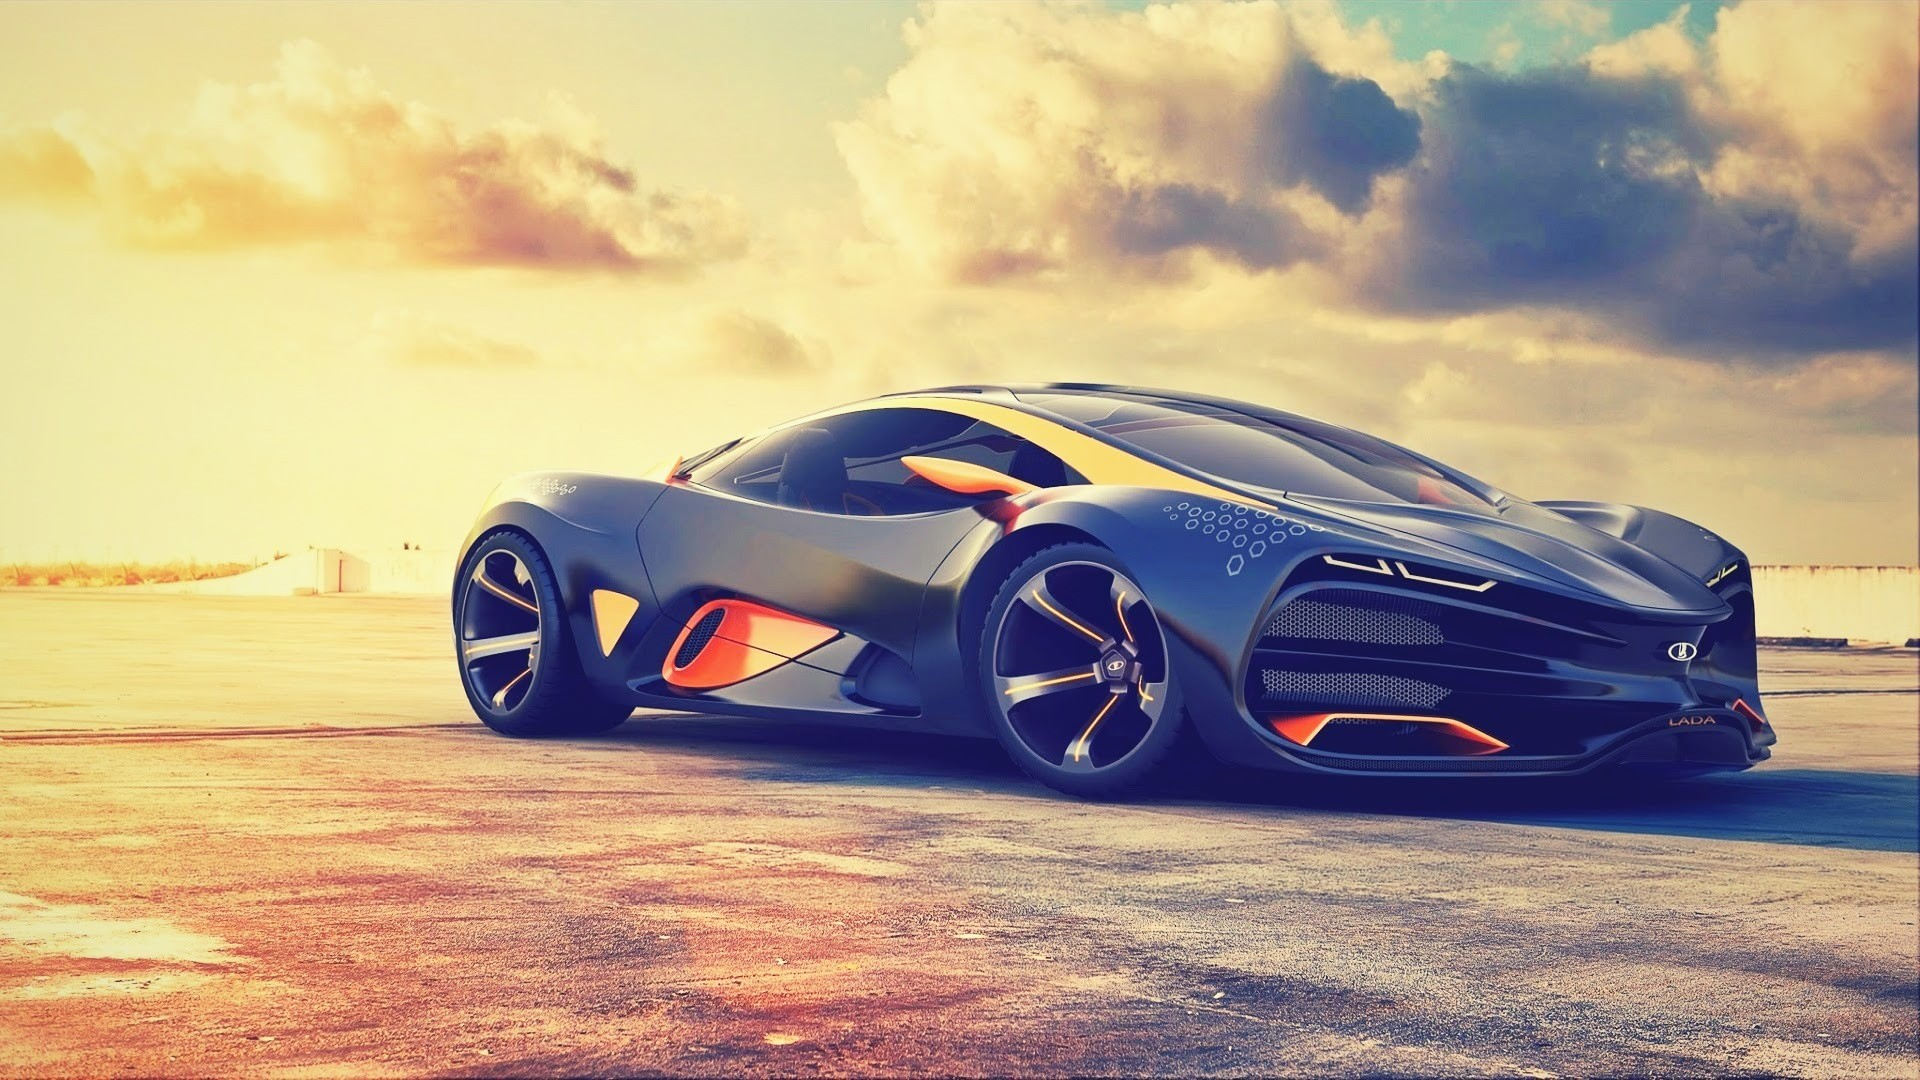 Lada Raven Concept Car Hd, HD Cars, 4k Wallpapers, Images